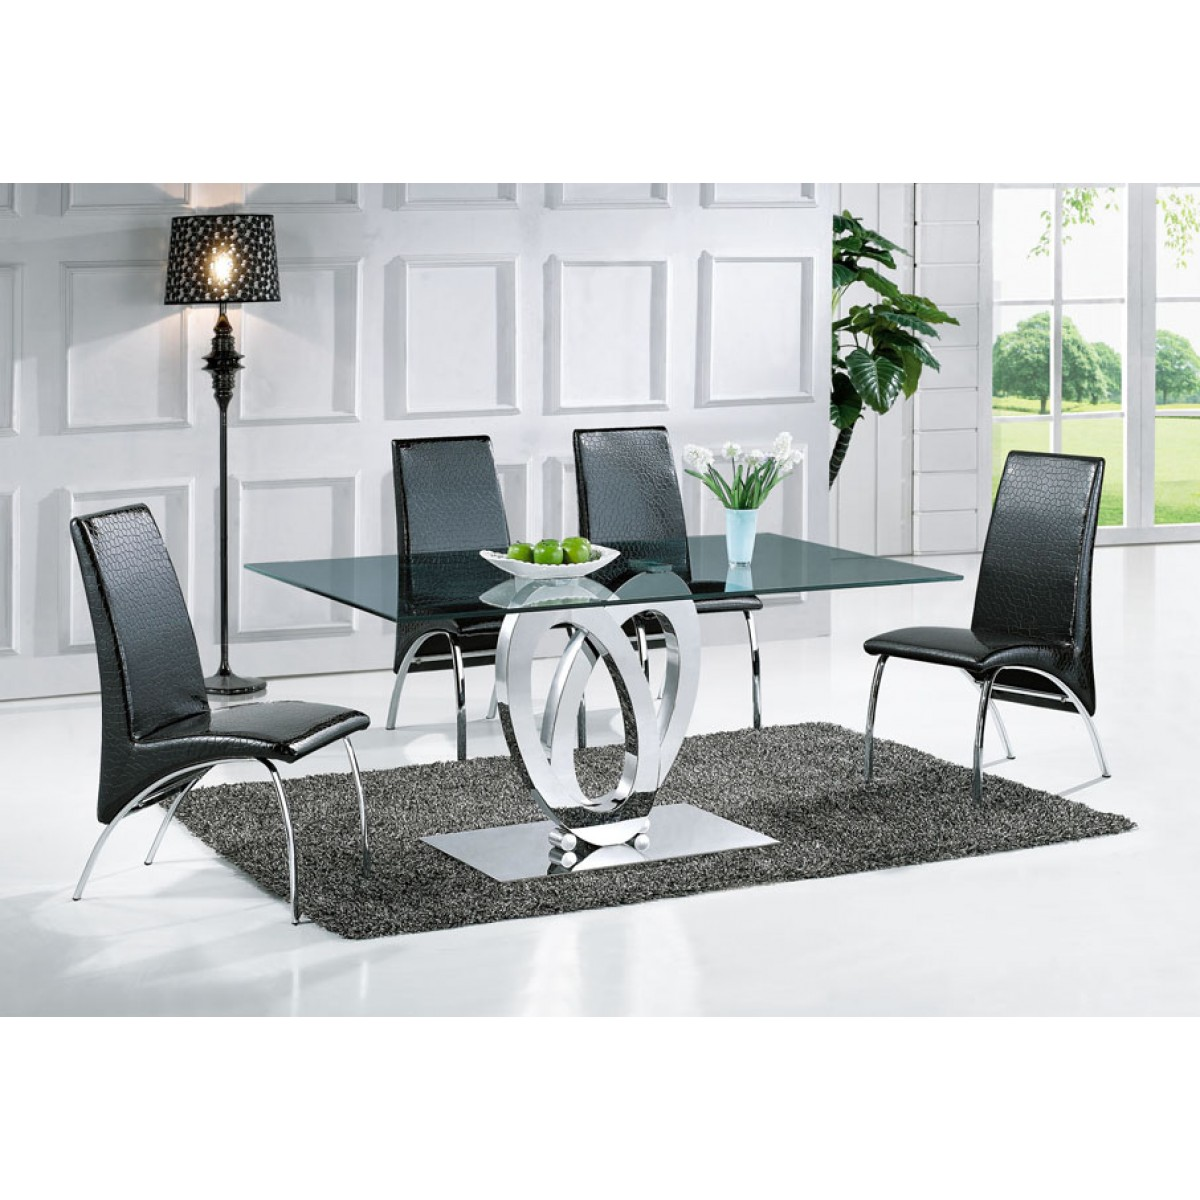 Table salle a manger design for Table salle a manger escamotable